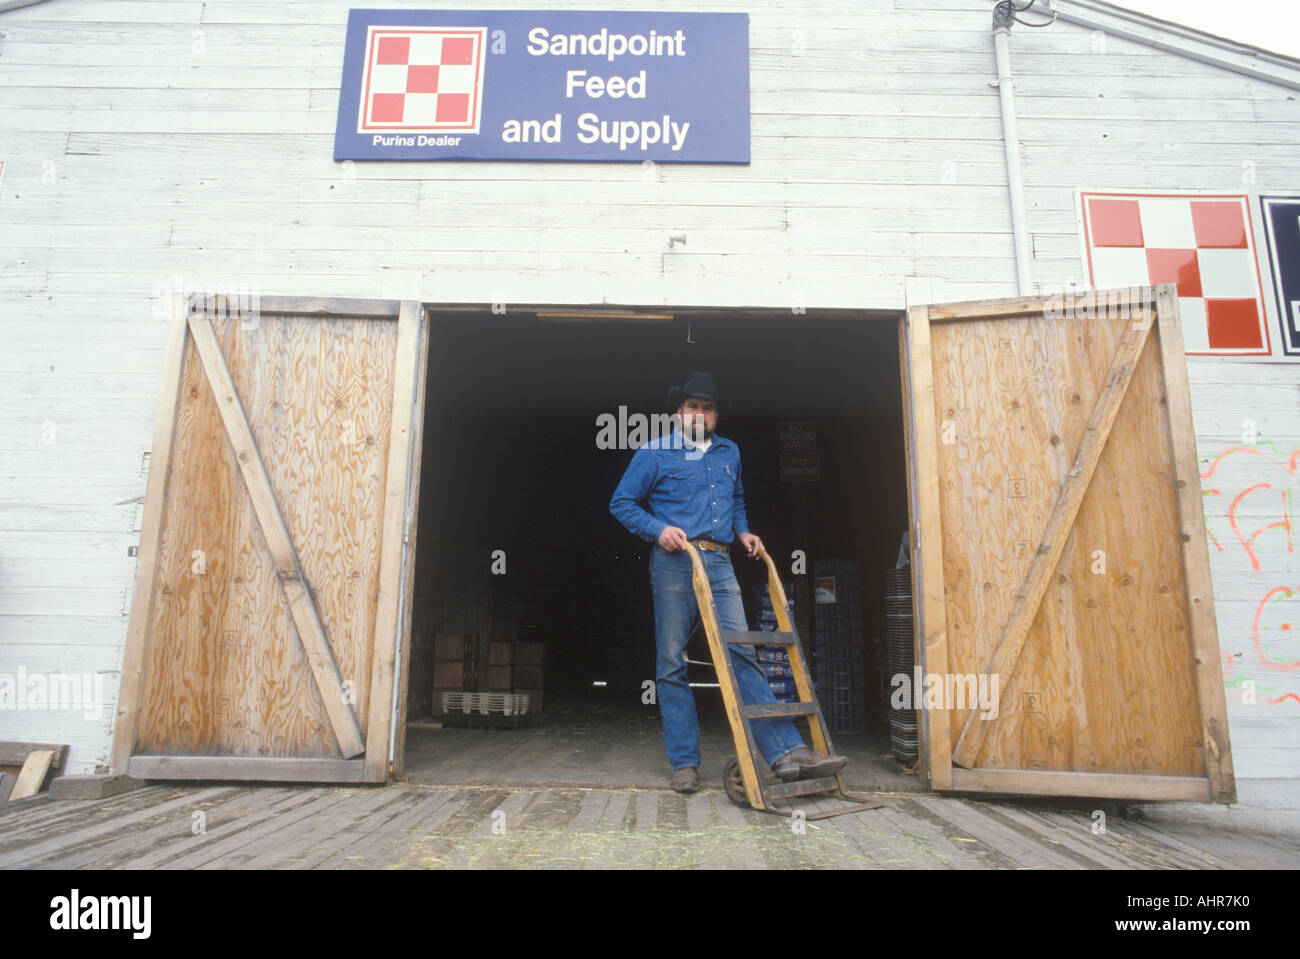 Man coming out of a feed store in Sandpoint ID - Stock Image